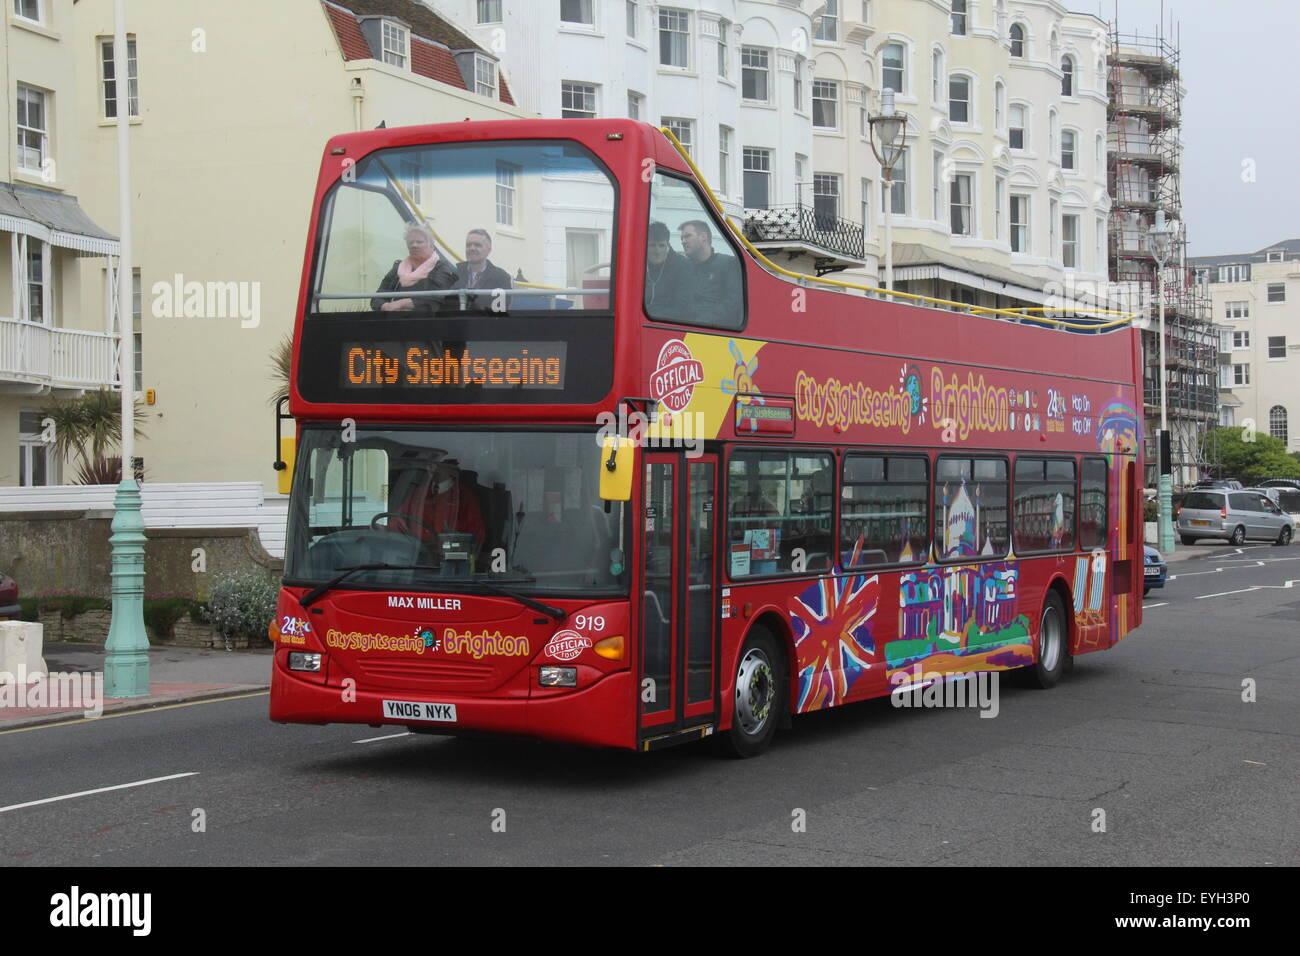 A CITY SIGHTSEEING OPEN TOP DOUBLE DECK TOURIST BUS IN BRIGHTON EAST SUSSEX UK - Stock Image